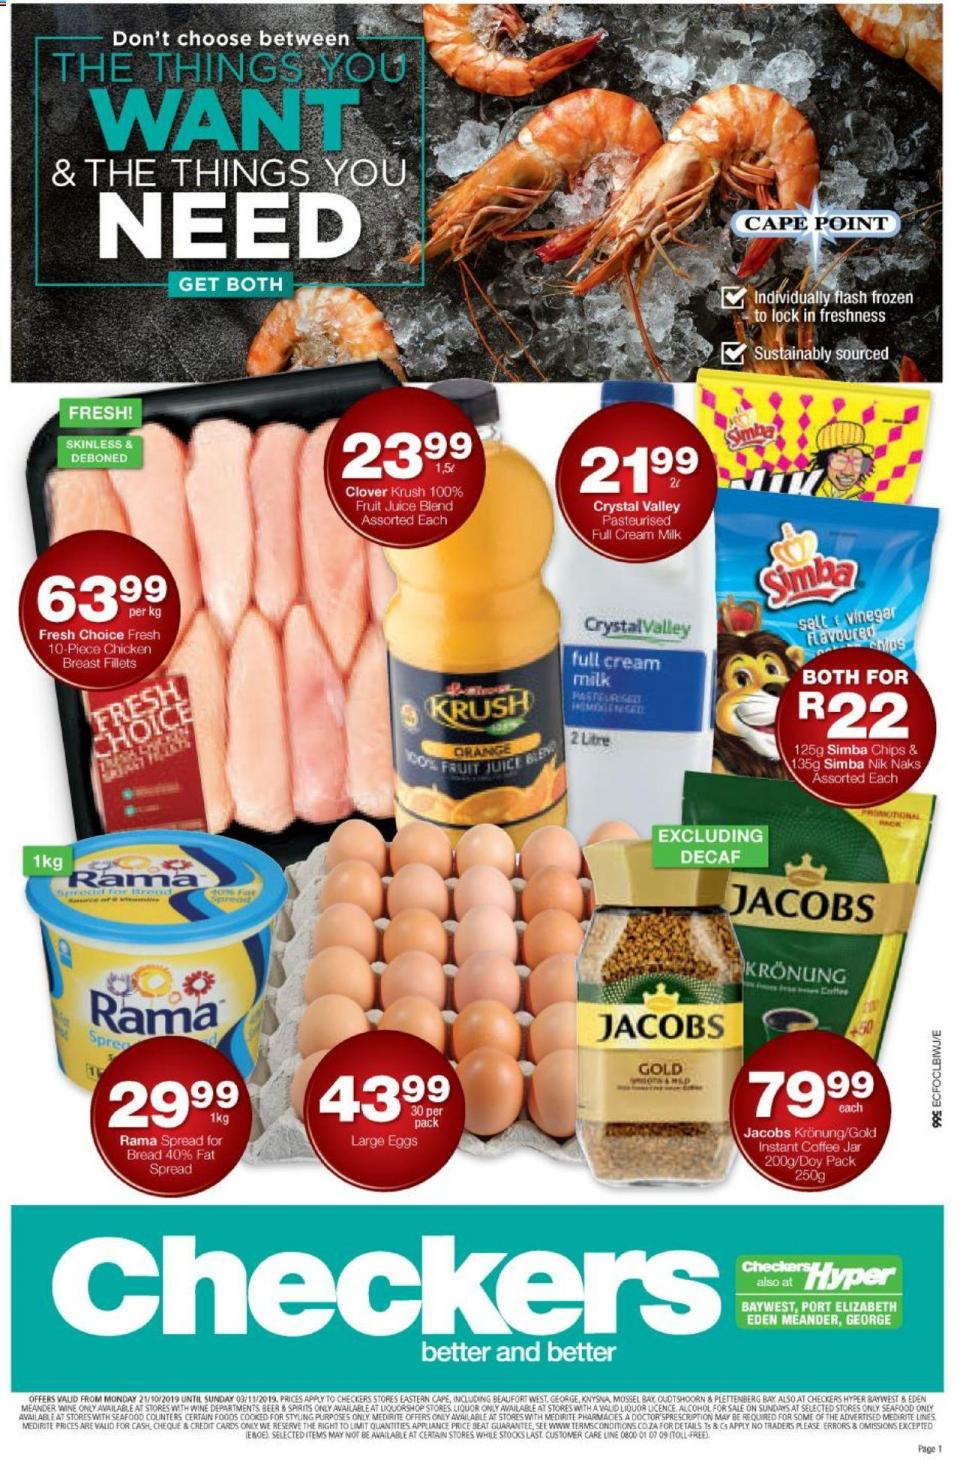 checkers specials eastern cape 21 october 2019